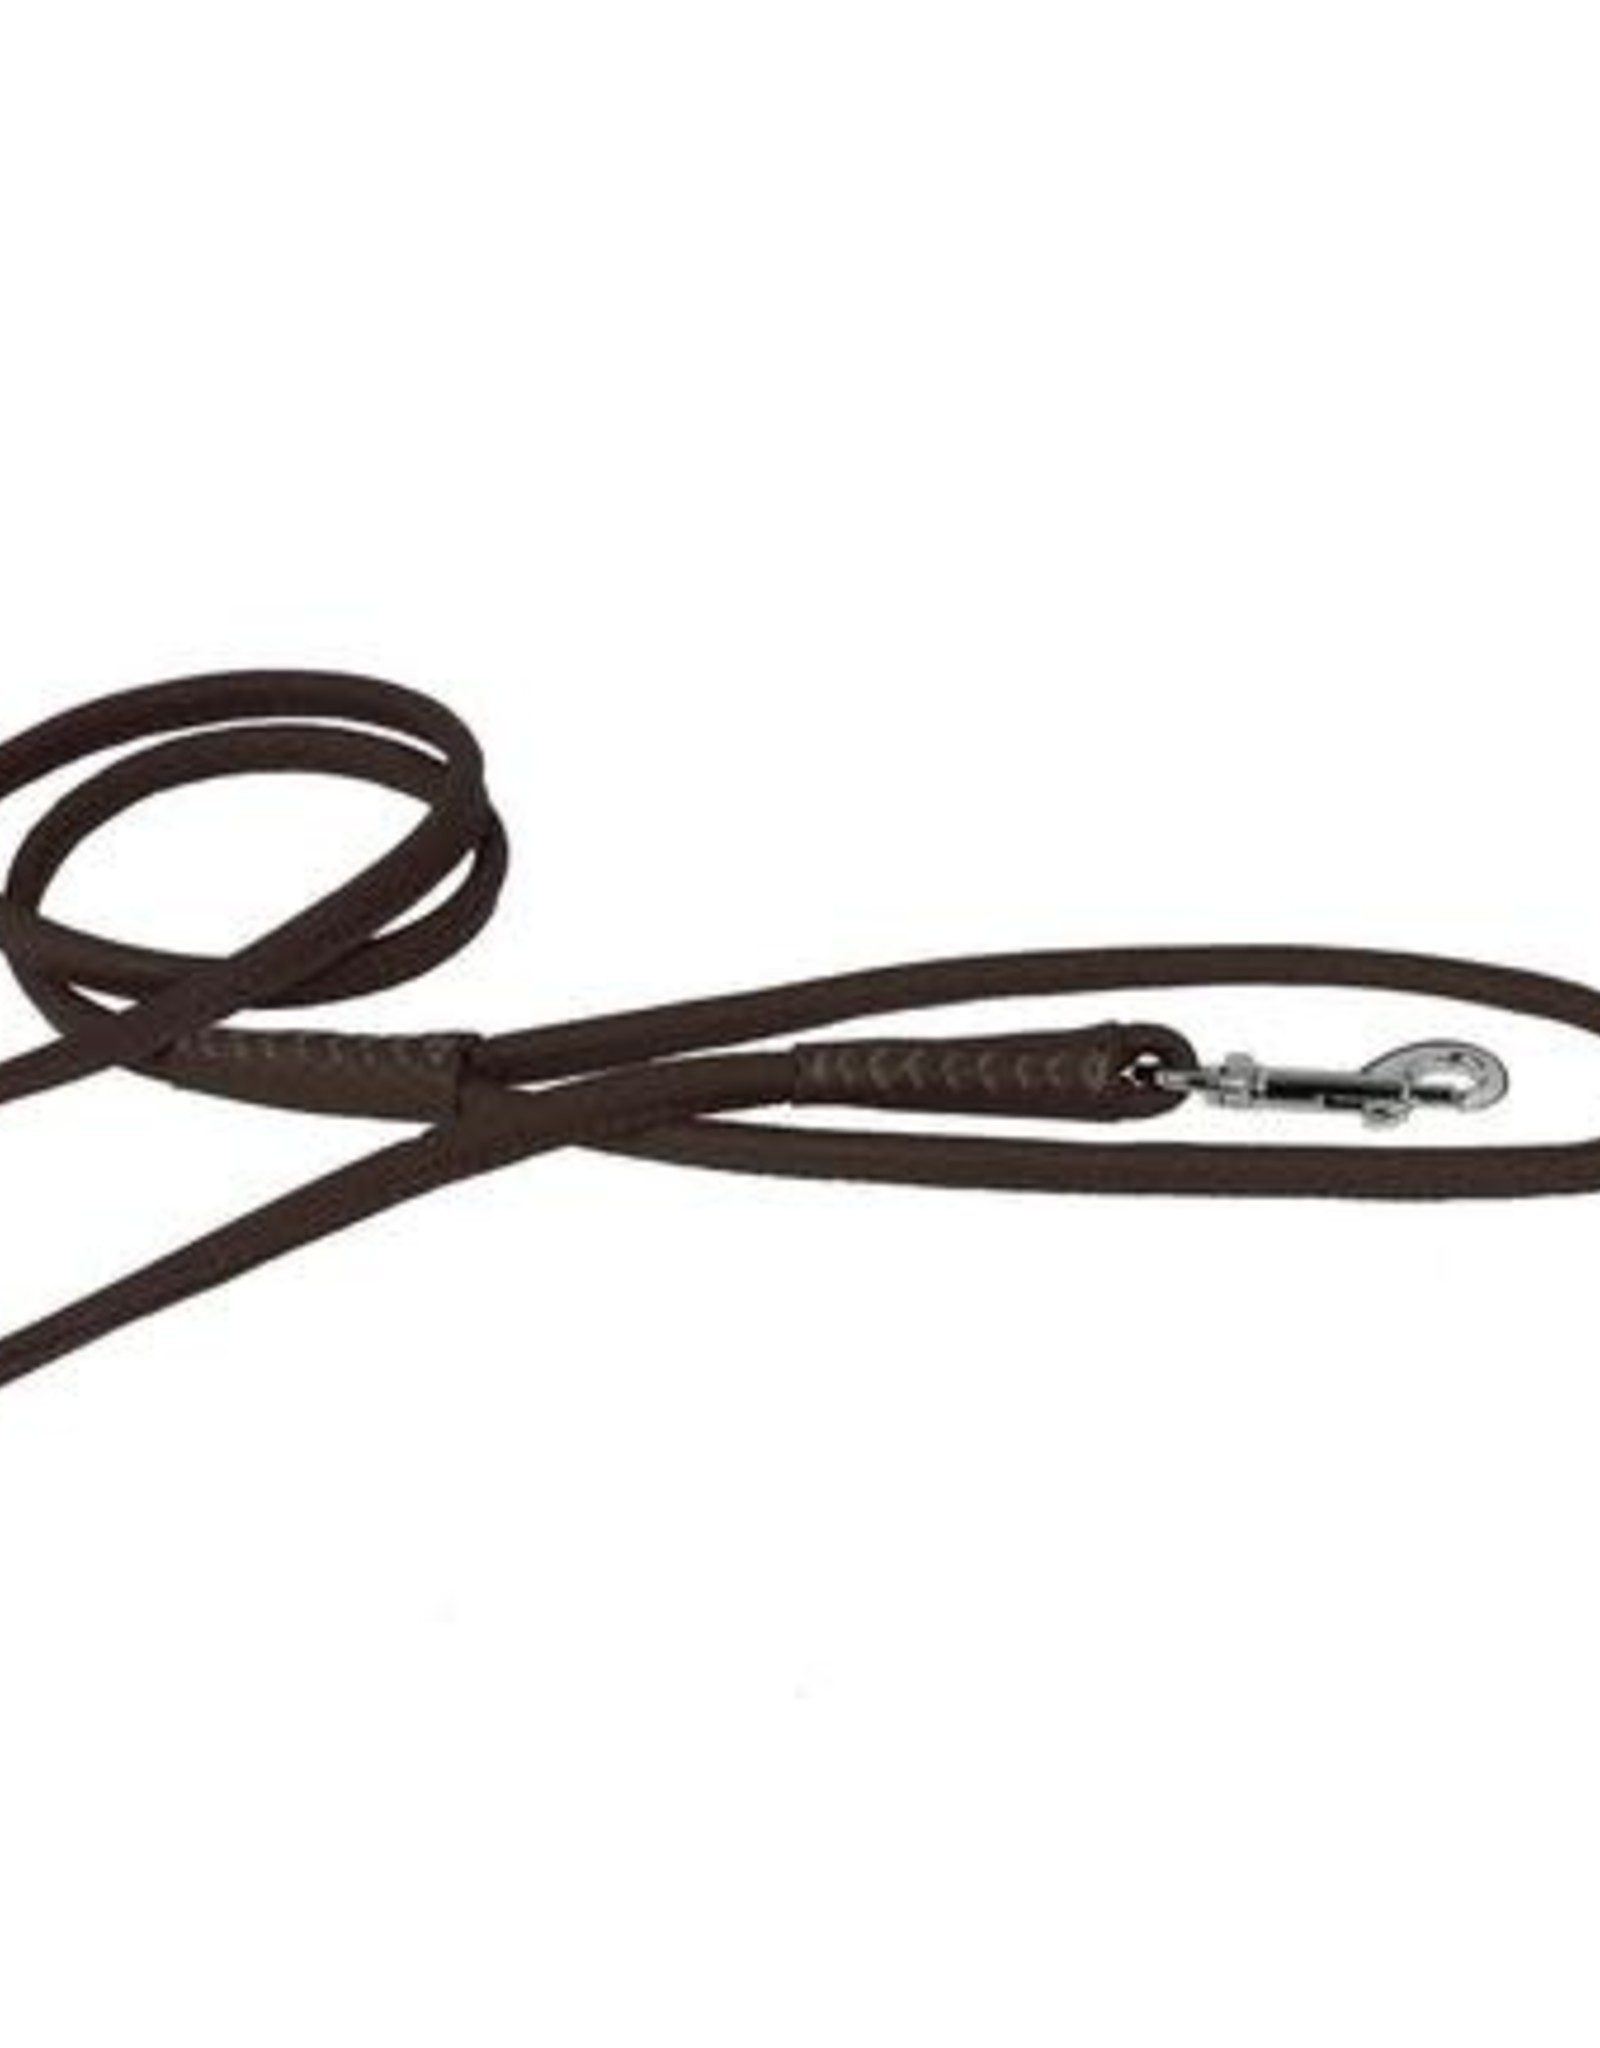 Dogline Dogline Dark Brown Leather Lead